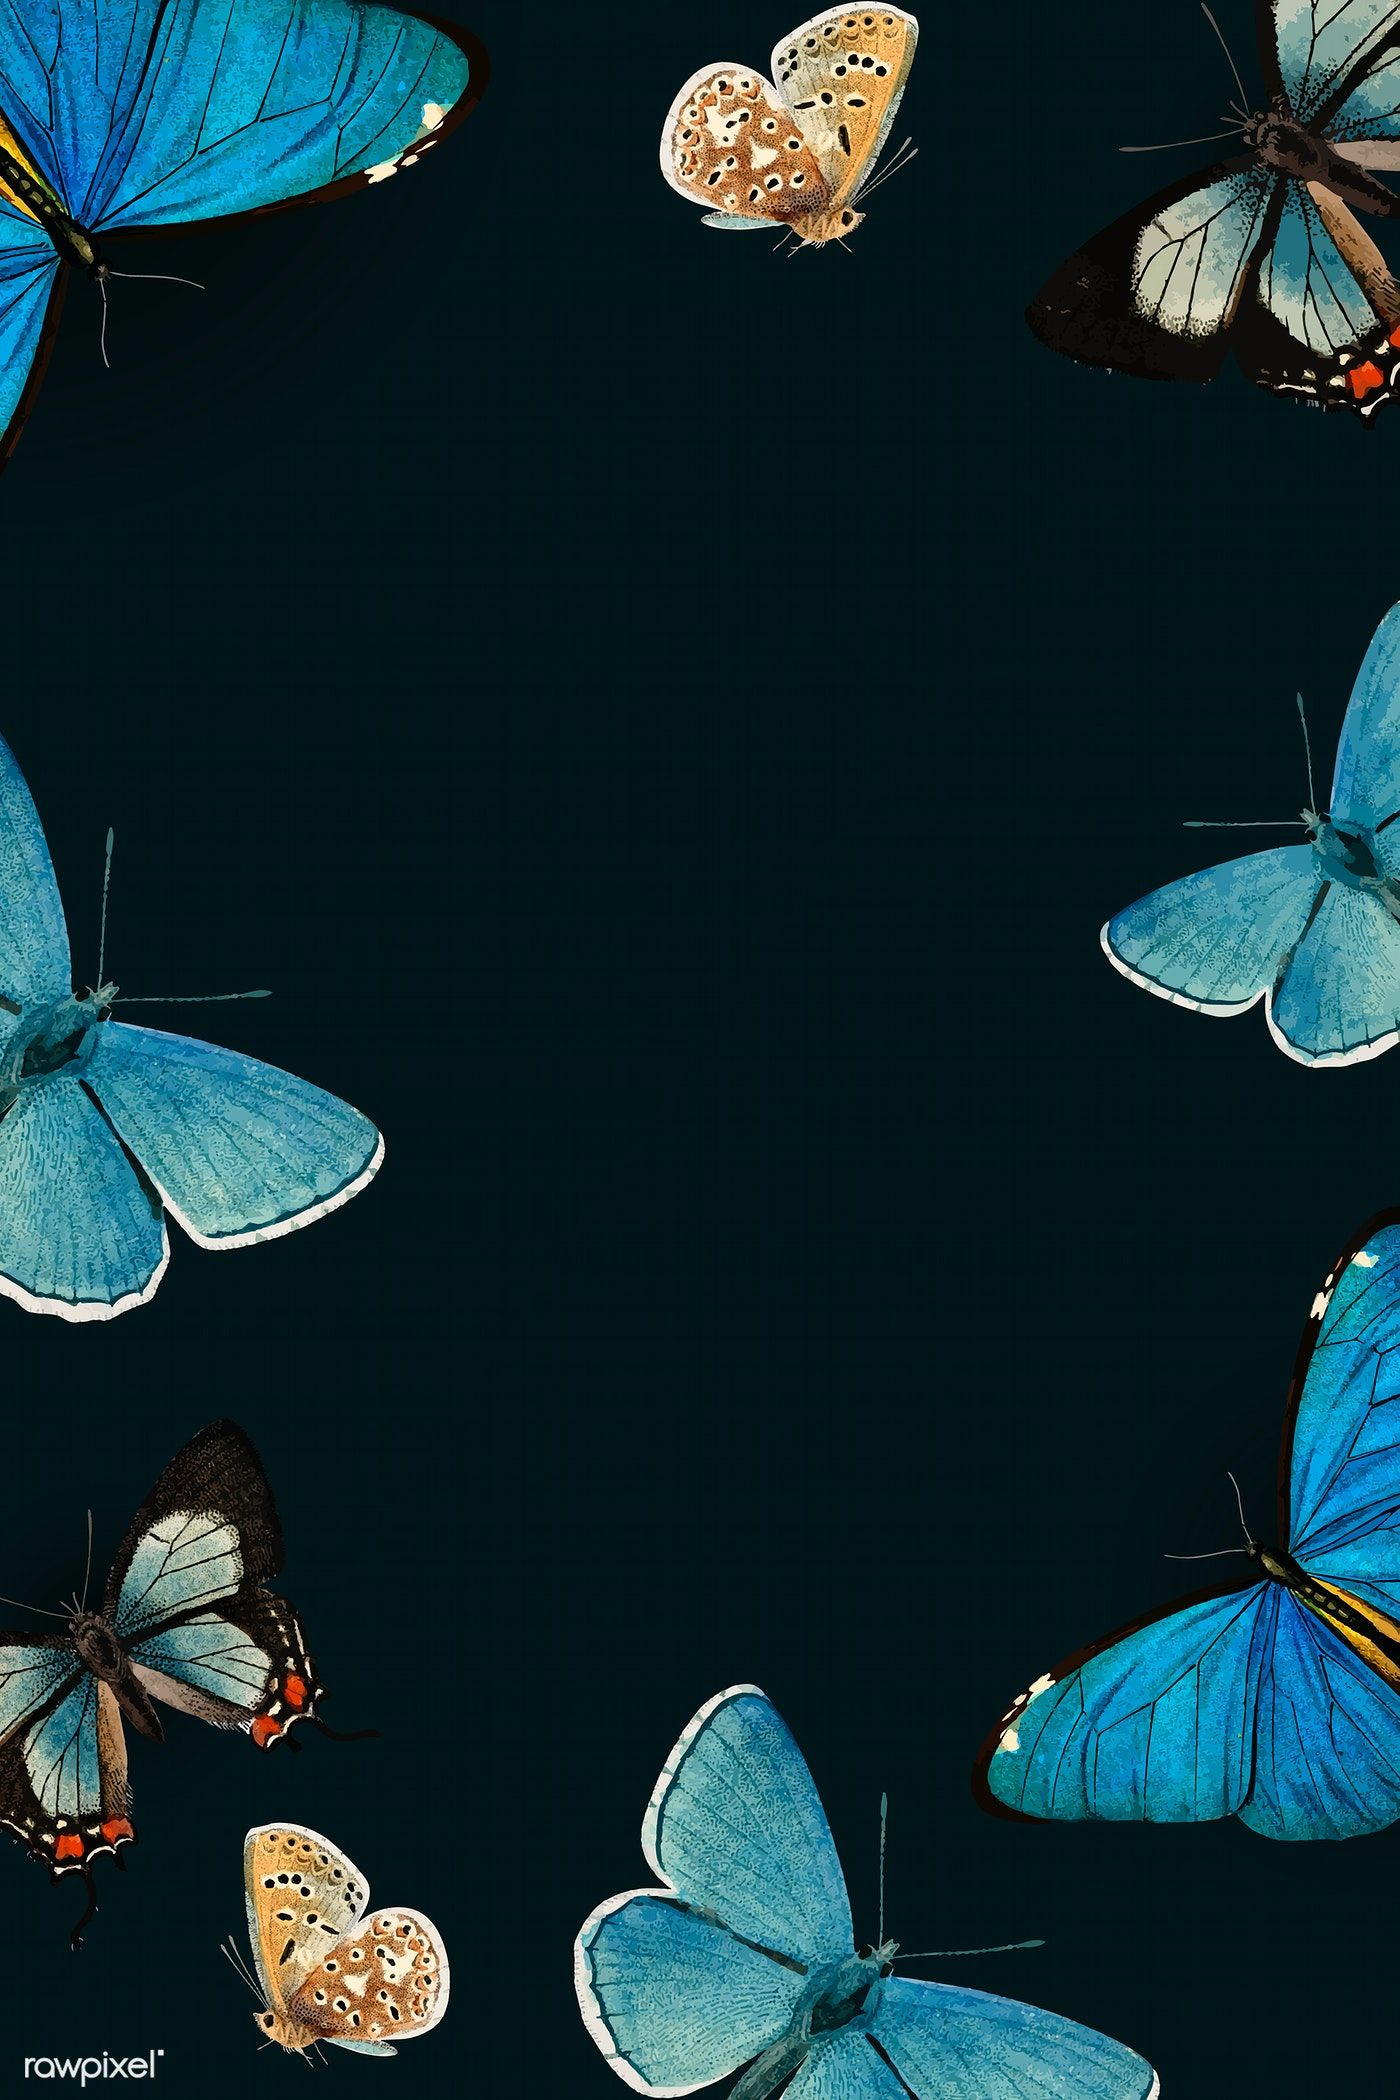 Download Premium Vector Of Blue Butterflies Patterned On Black Background In 2020 Blue Butterfly Black Background Painting Butterfly Wallpaper Backgrounds